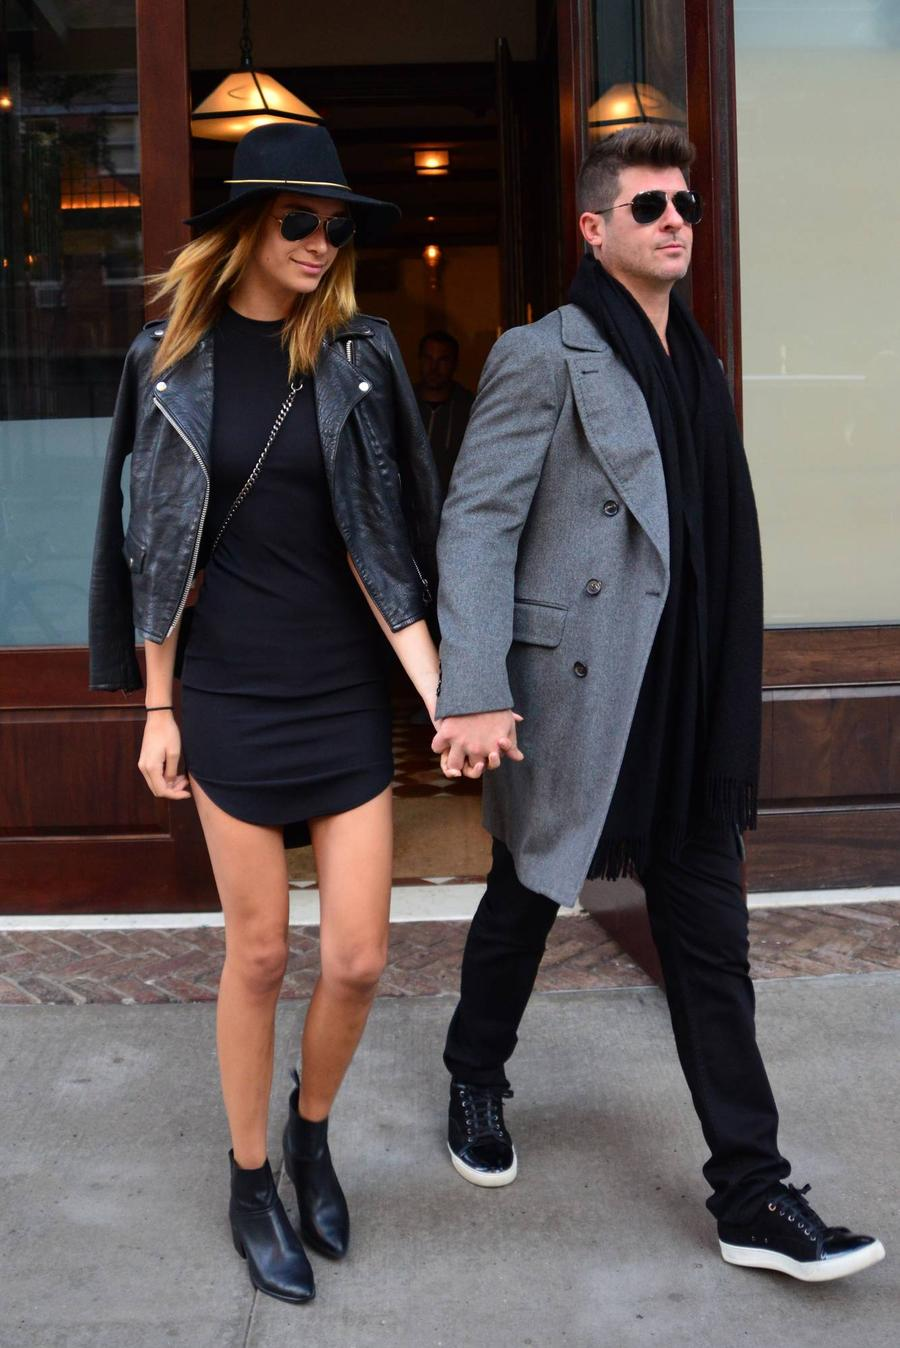 Robin Thicke's Girlfriend Fuels Rumours The Couple Has Wed